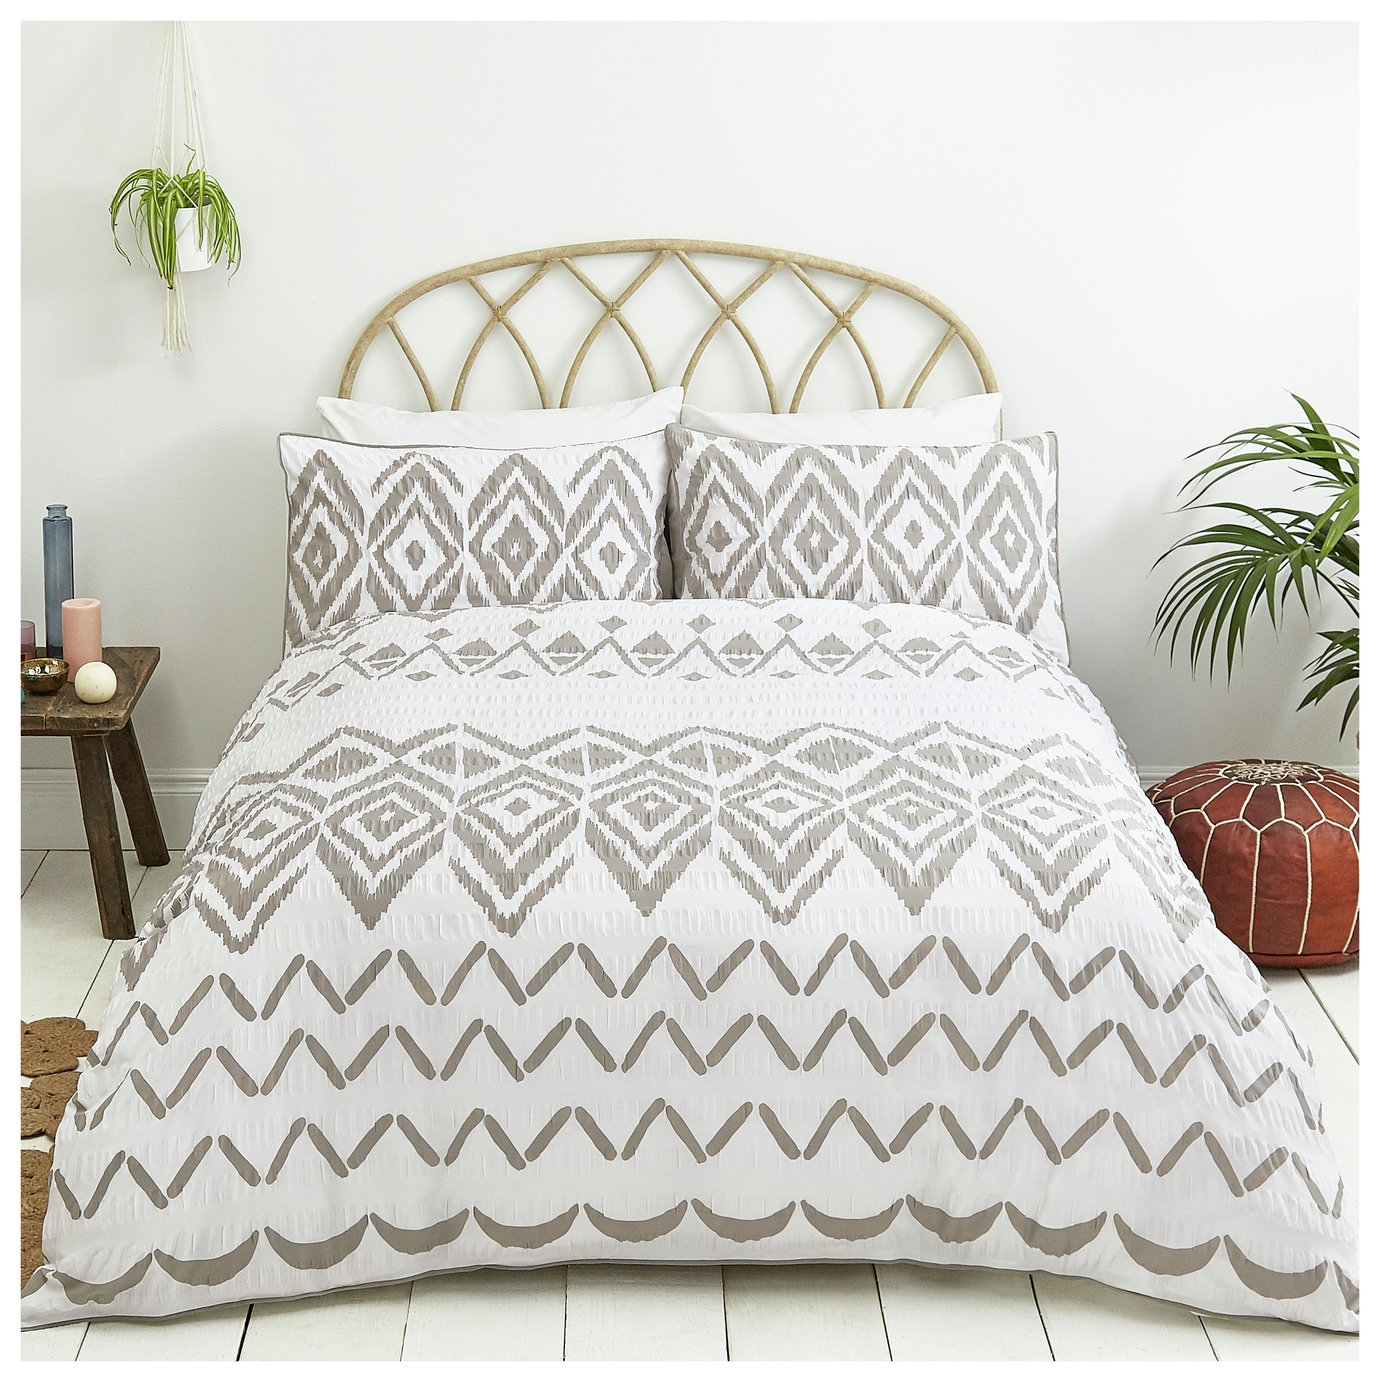 Sainsbury's Home Boho Grey Seersucker Bedding Set - Double